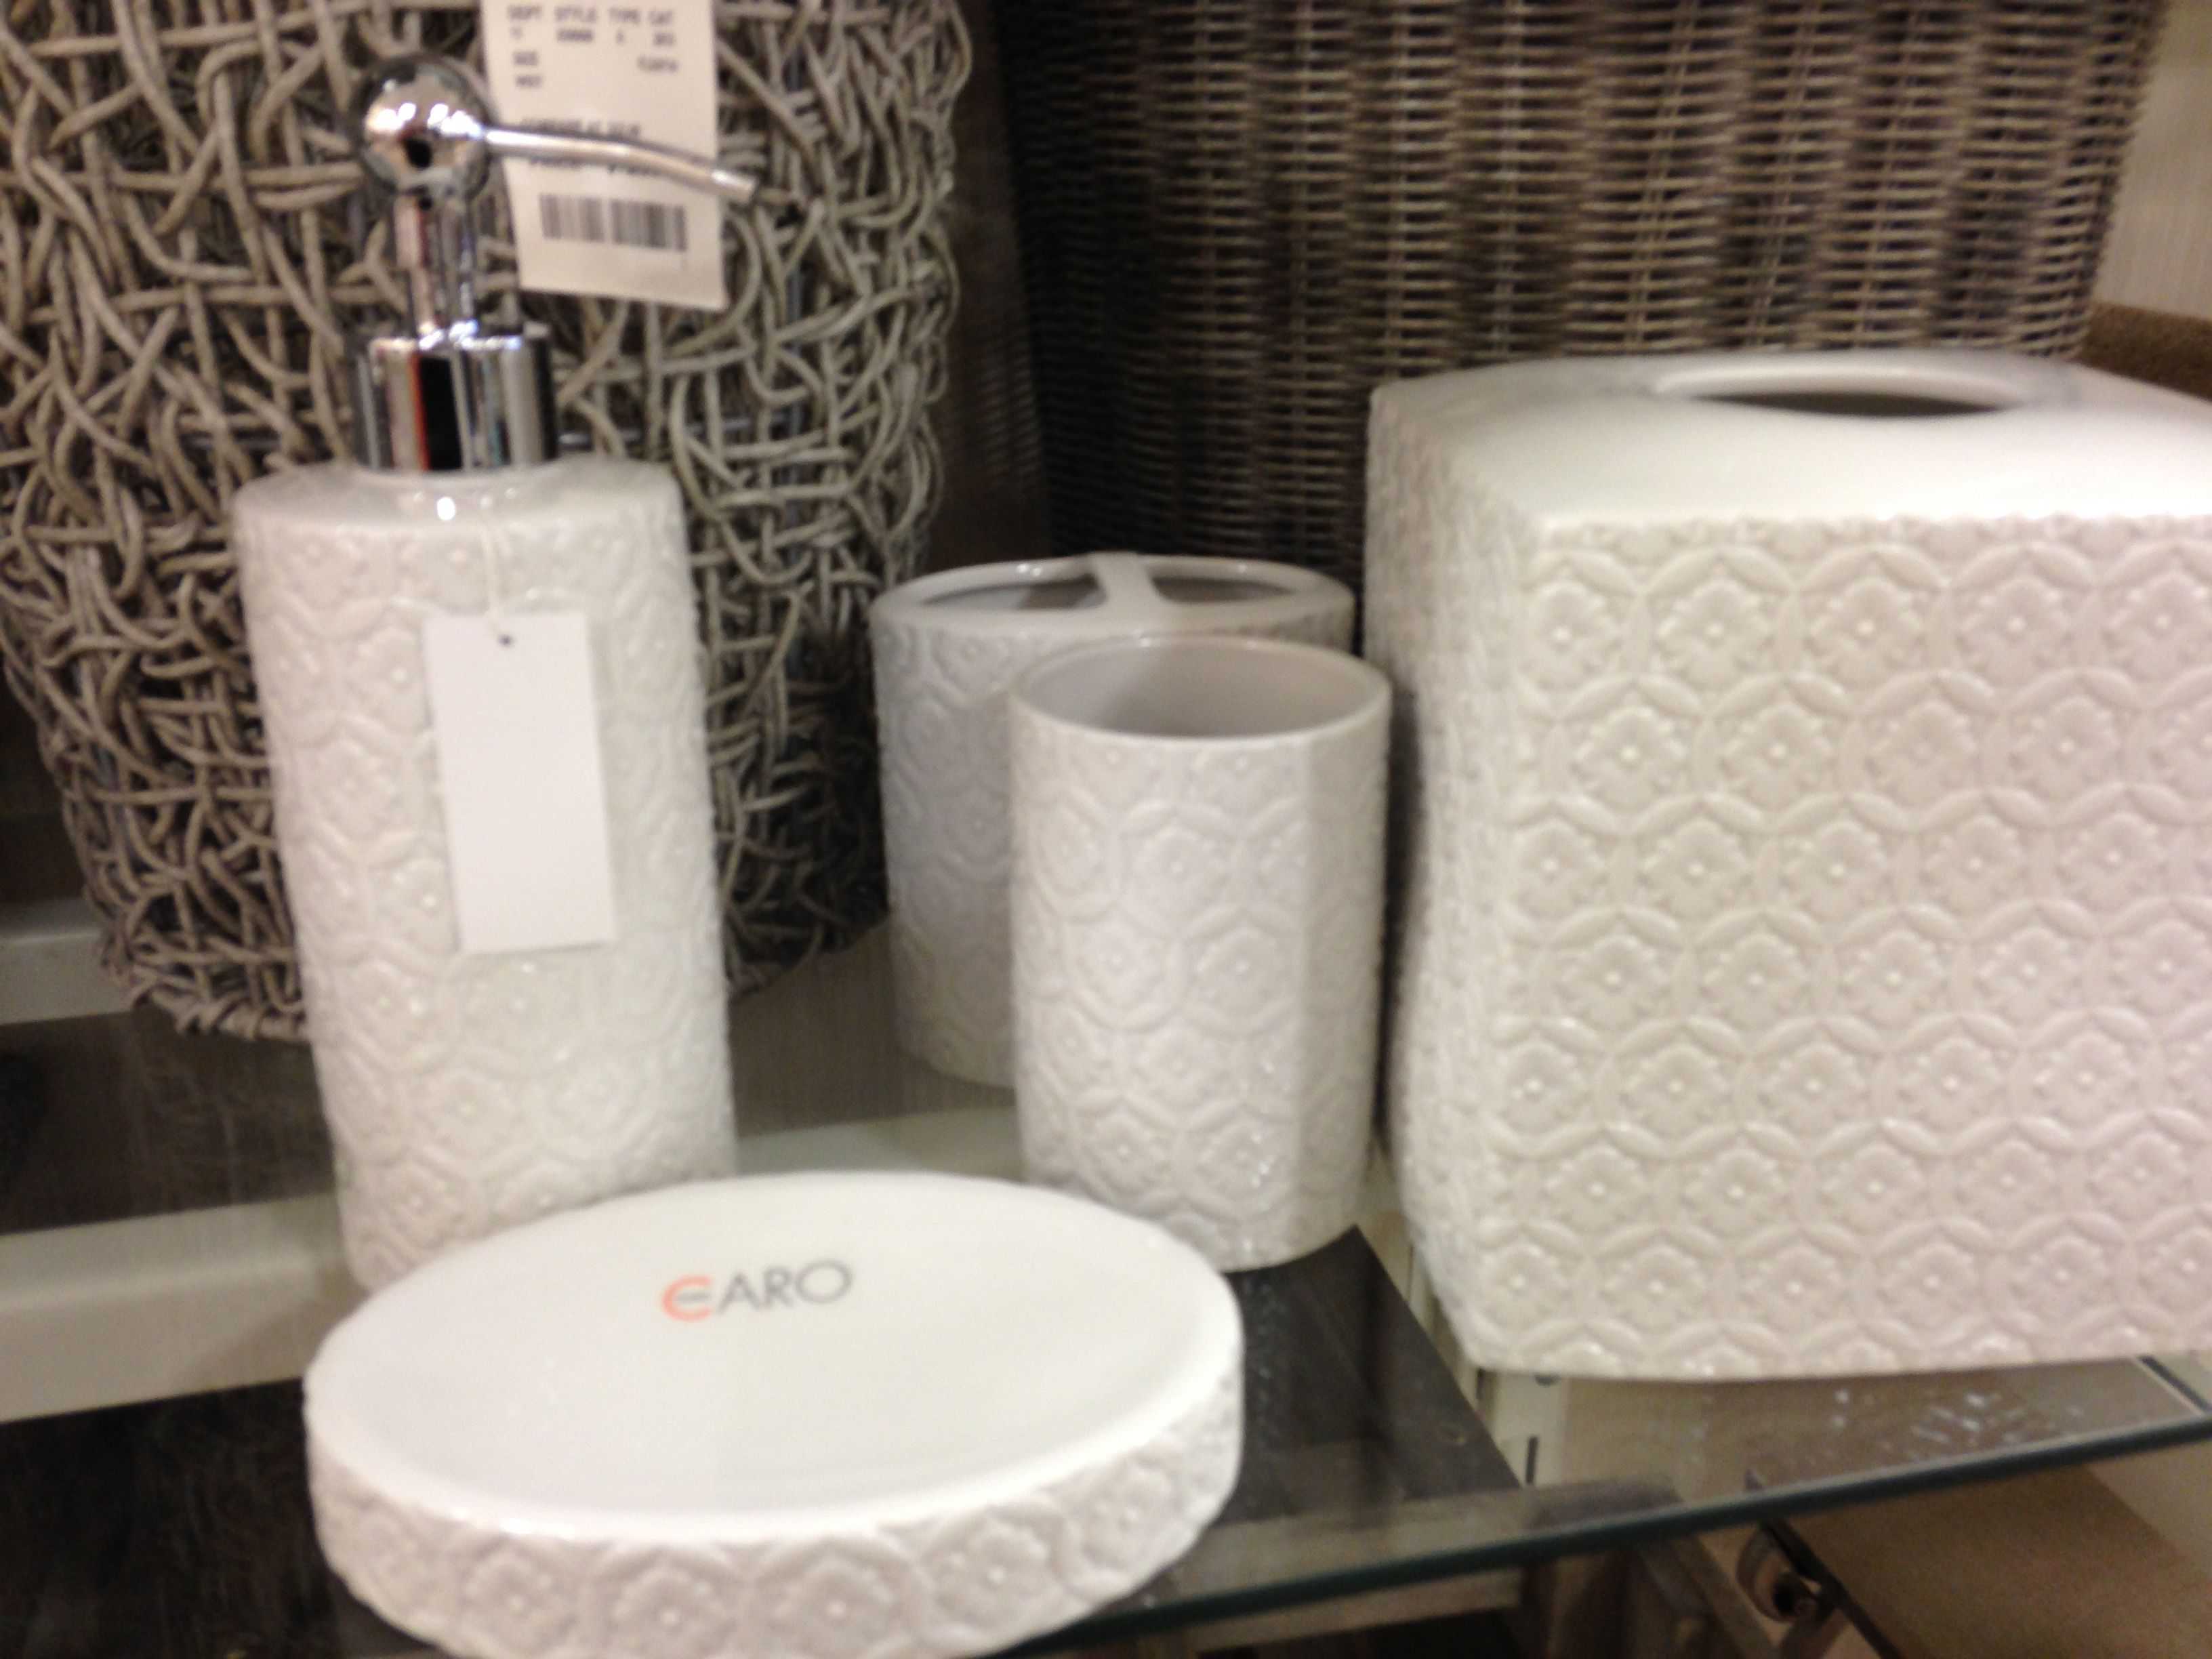 Bathroom Accessories At Home Goods